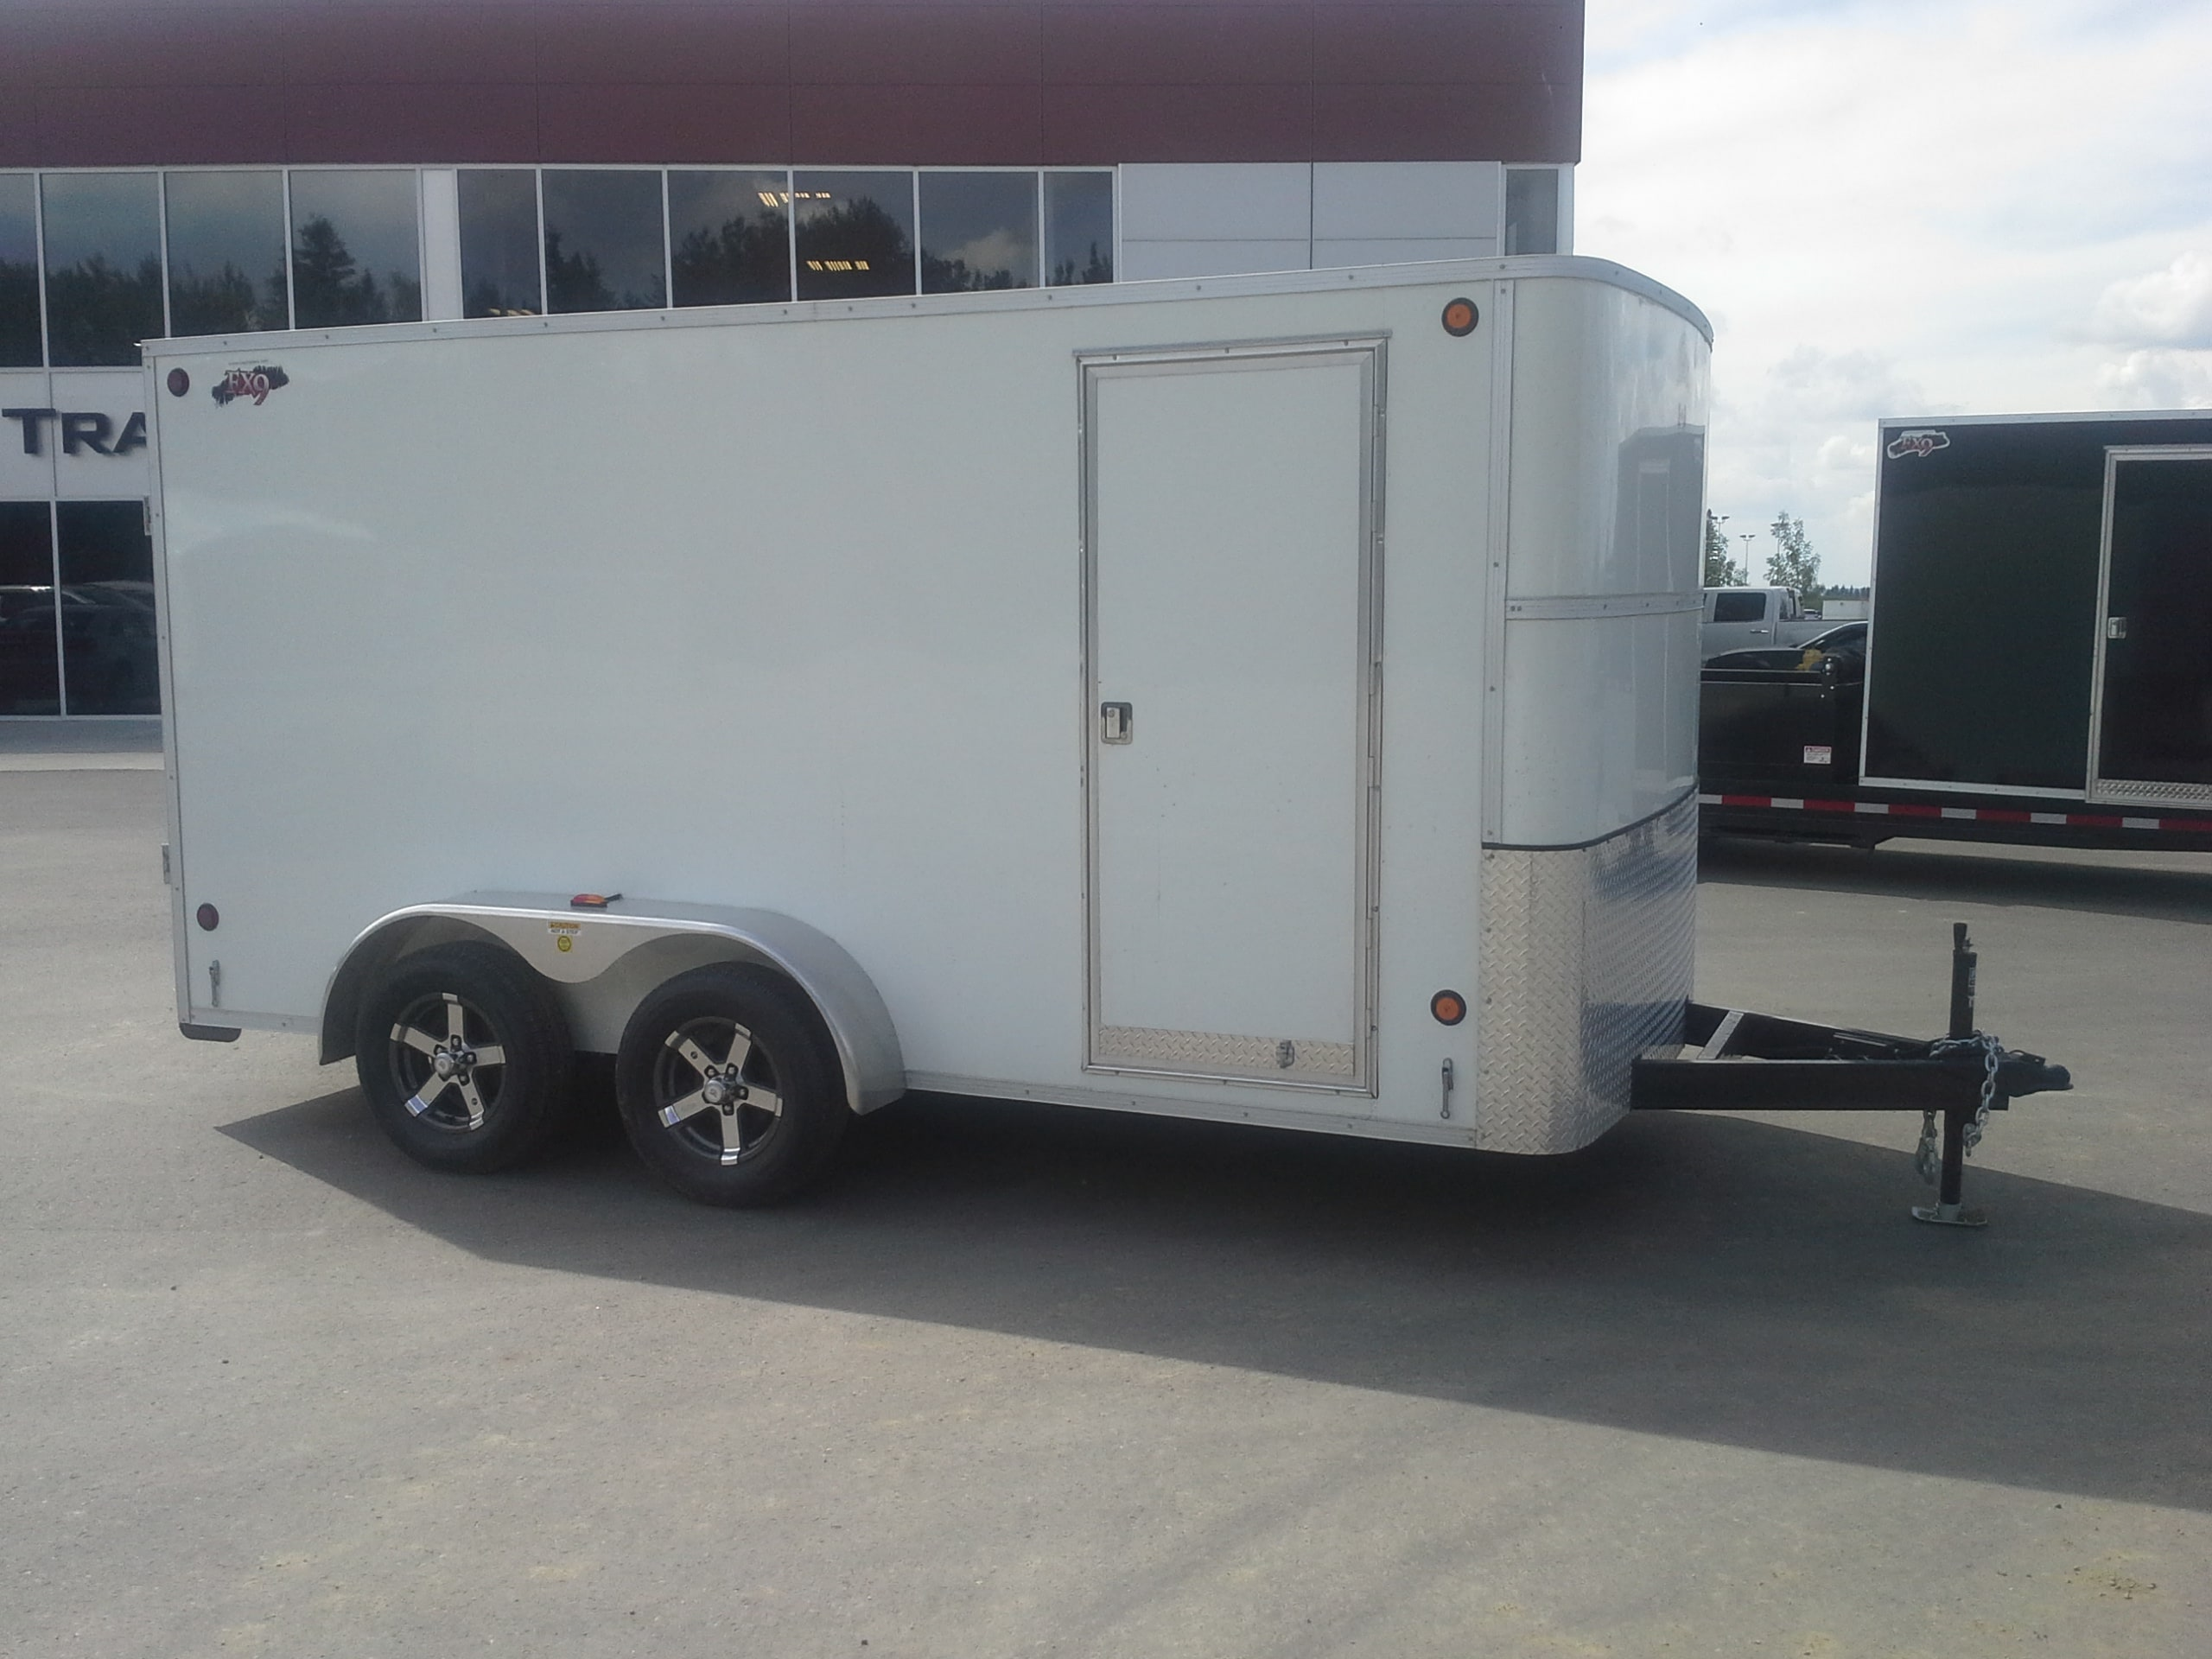 New 2016 CJay Trailers FX9-714-72-T35 Enclosed Tandem Edmonton